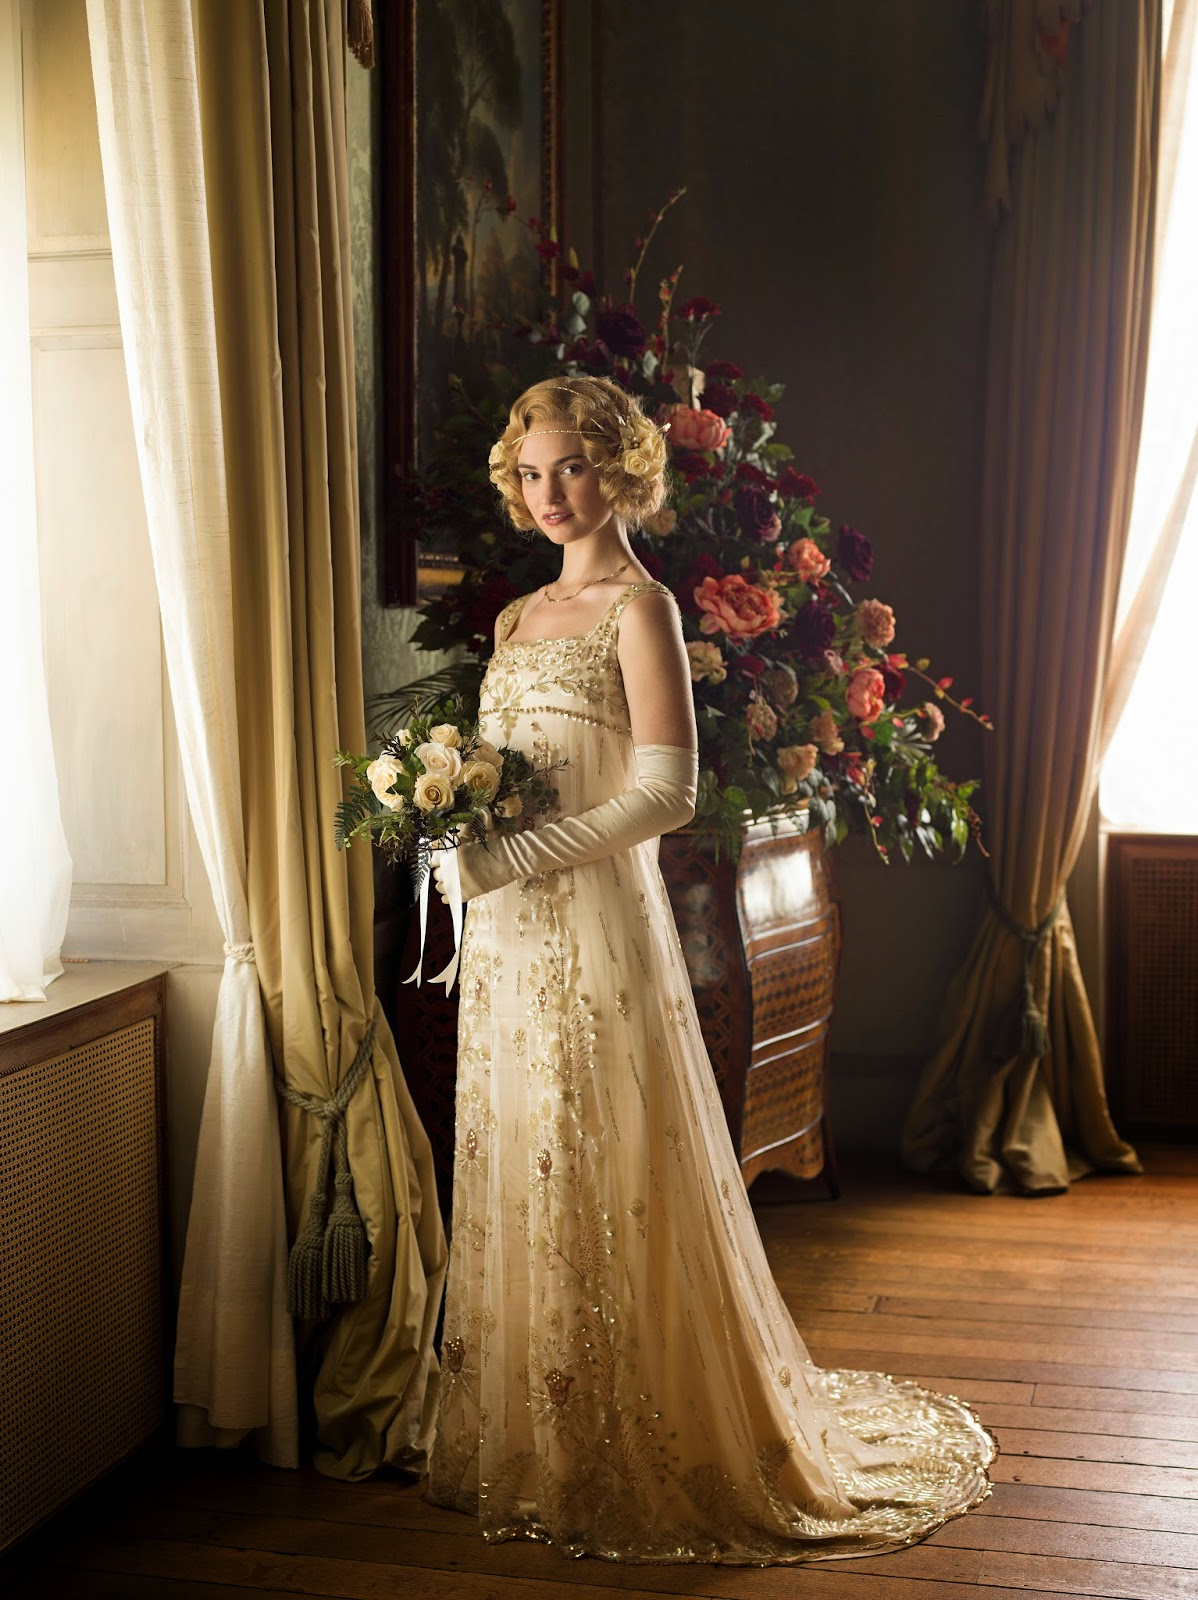 Downton Abbey\'s Wedding Gown Will Brighten Your Day | Marie ...